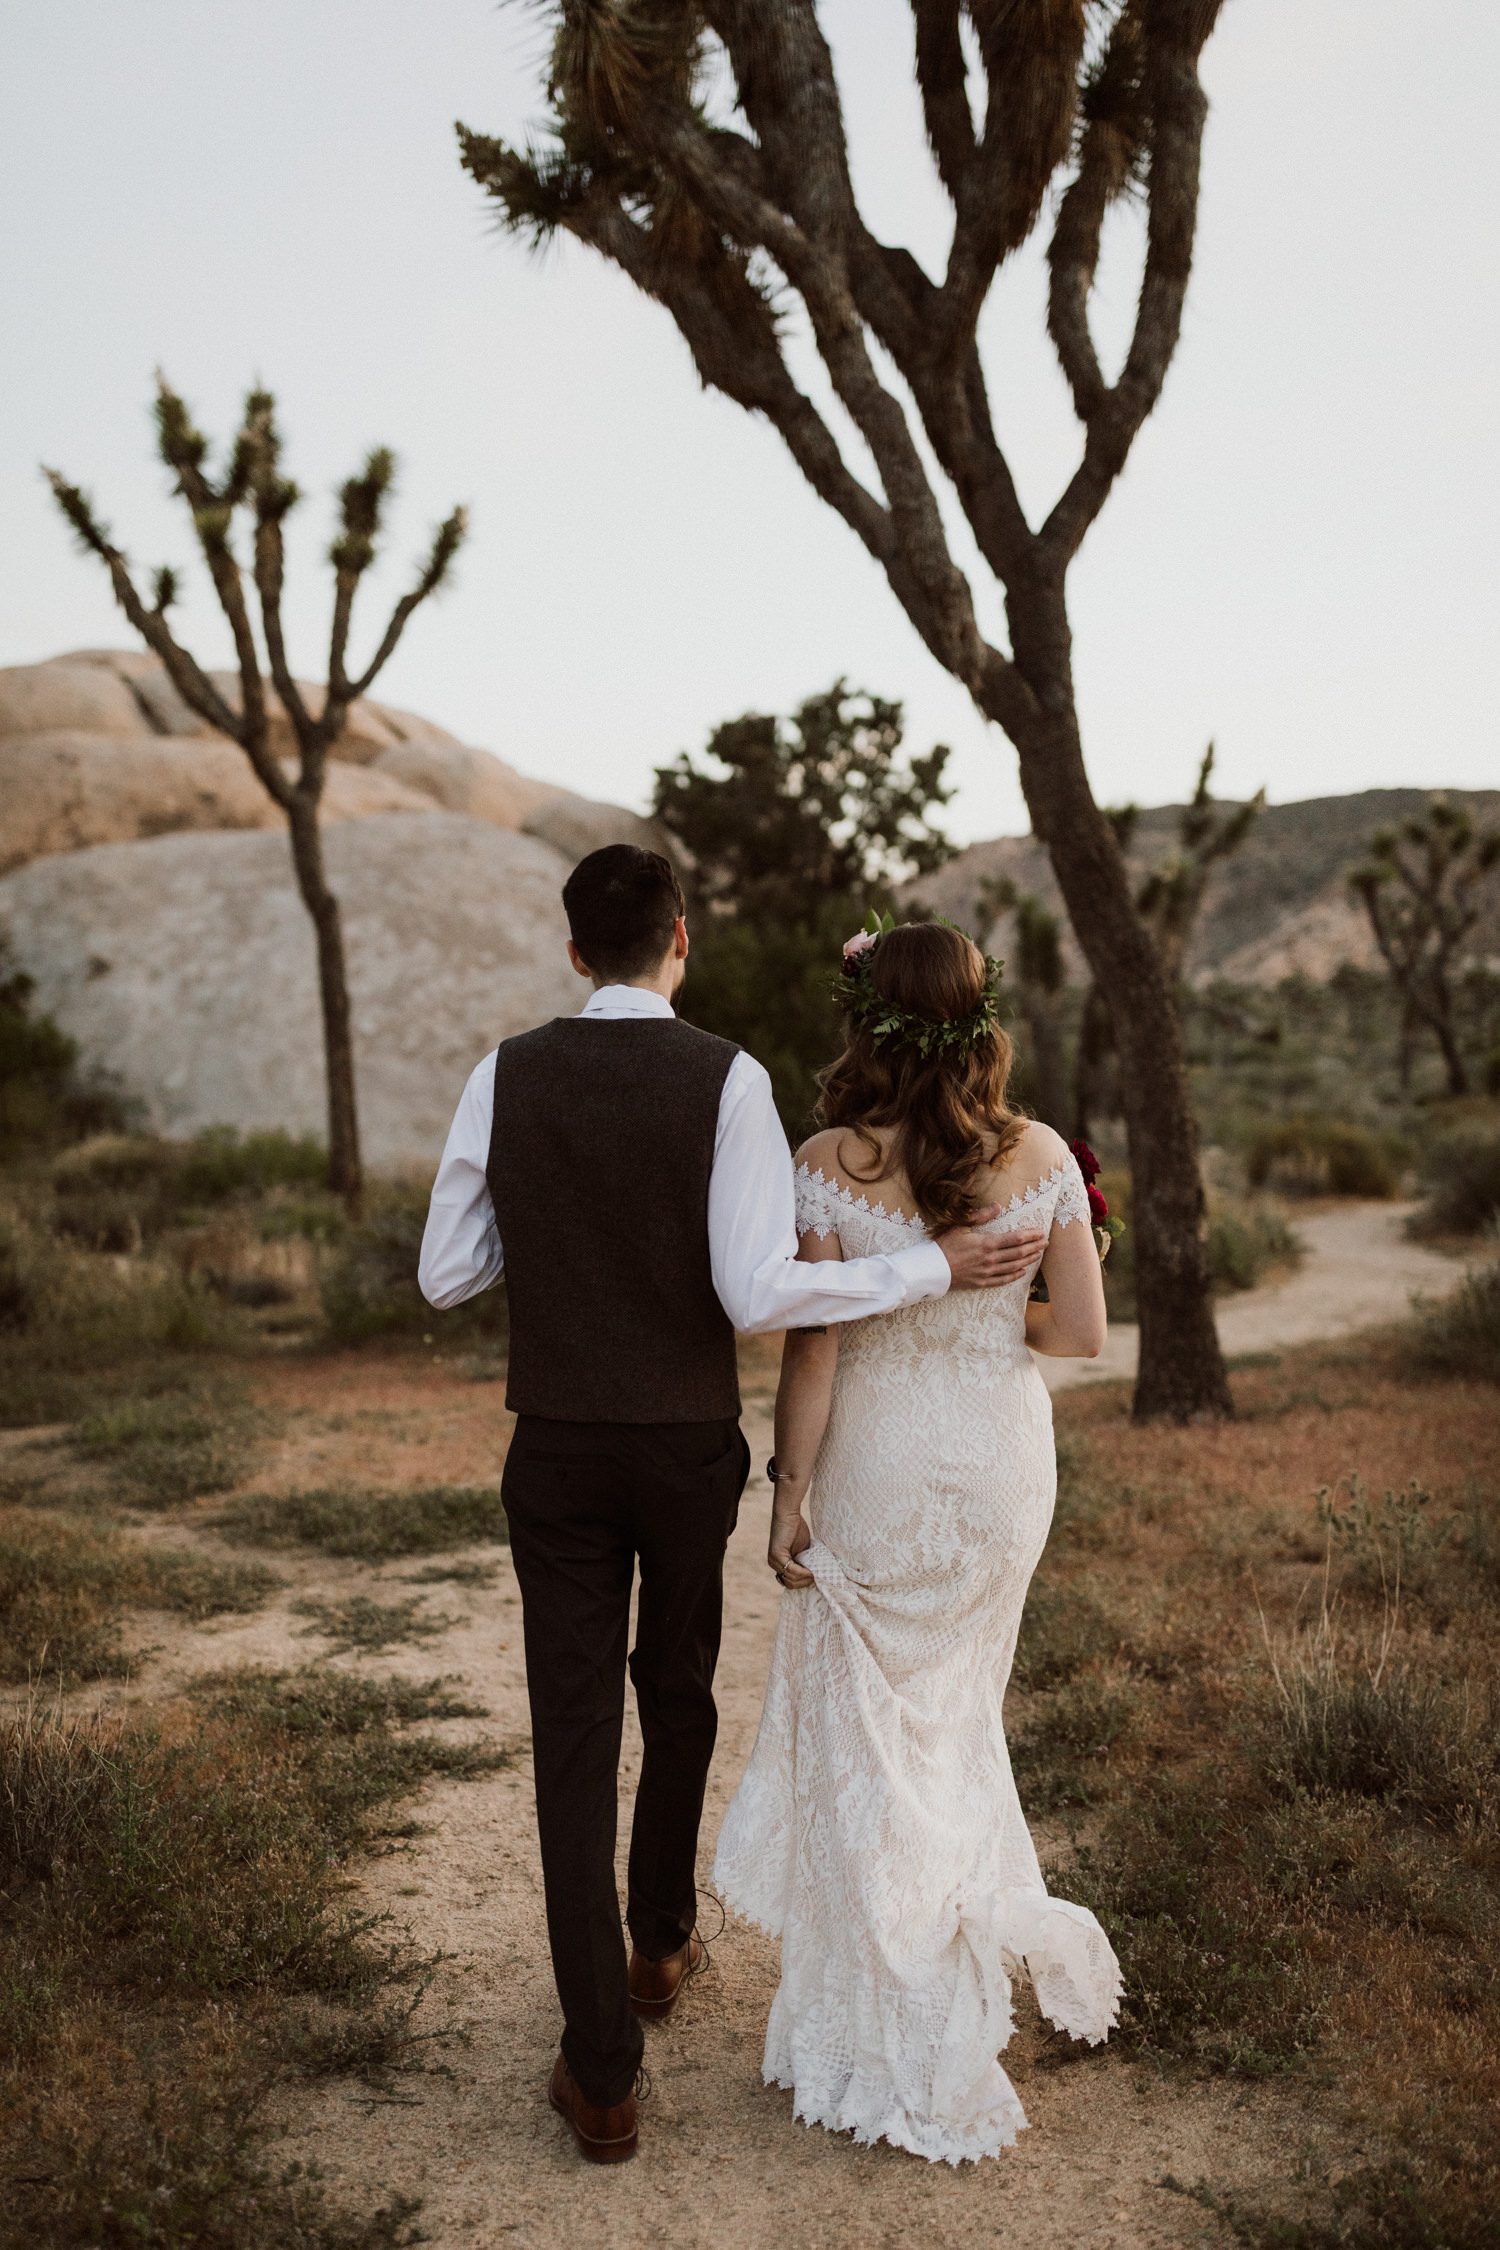 joshua-tree-national-park-elopement-6.jpg